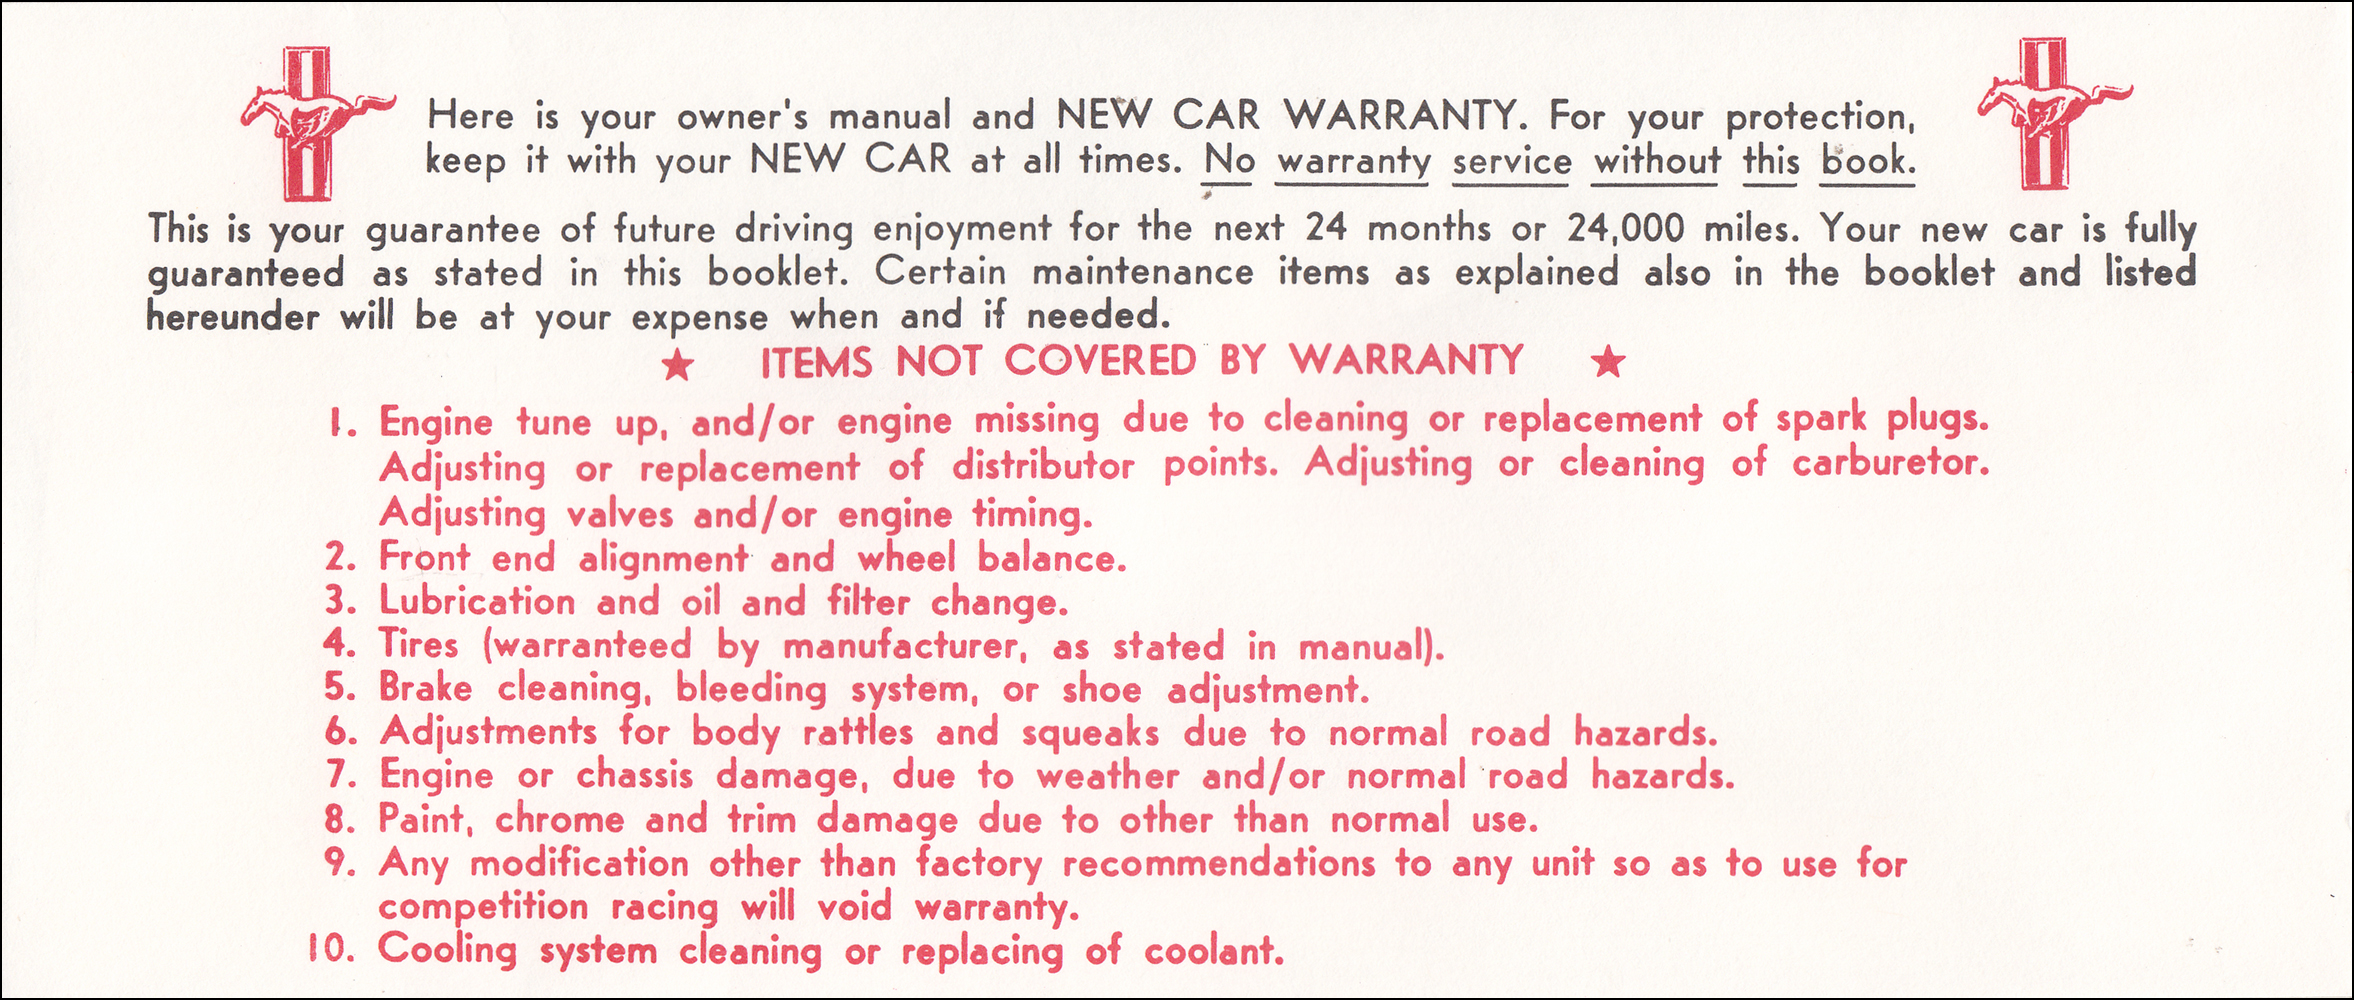 1965 Ford Mustang Owners Manual Reprint With Envelope Original Wiring Diagram Of Comet Click On Thumbnail To Zoom